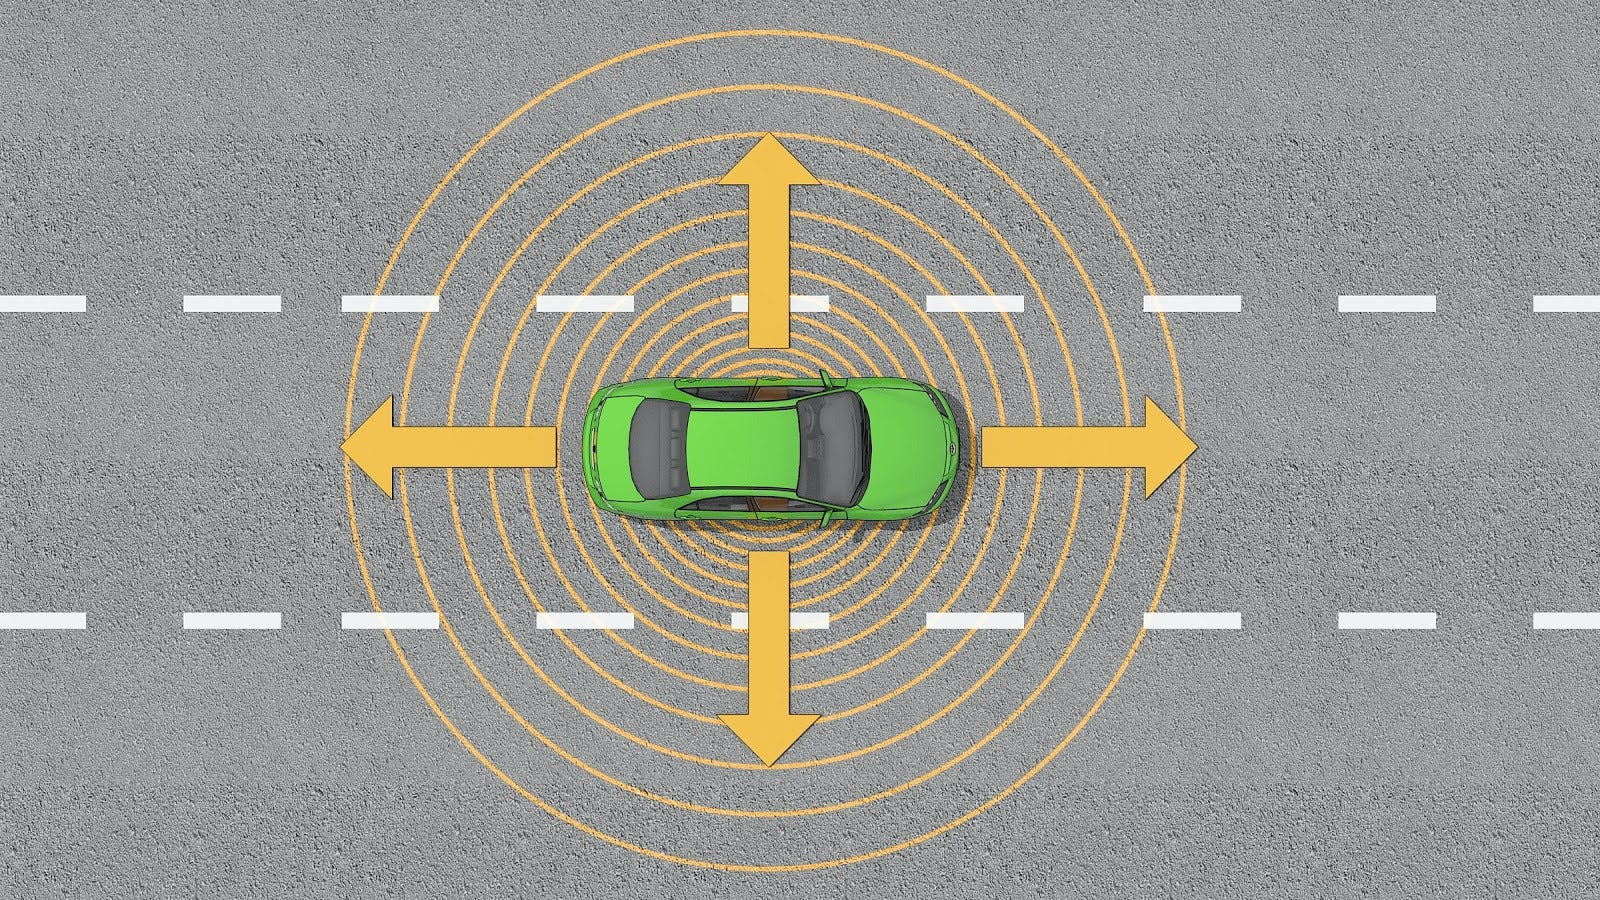 A BUFFER ZONE AROUND YOUR VEHICLE ALLOWS  YOU TO REACT TO POTENTIAL HAZARDS